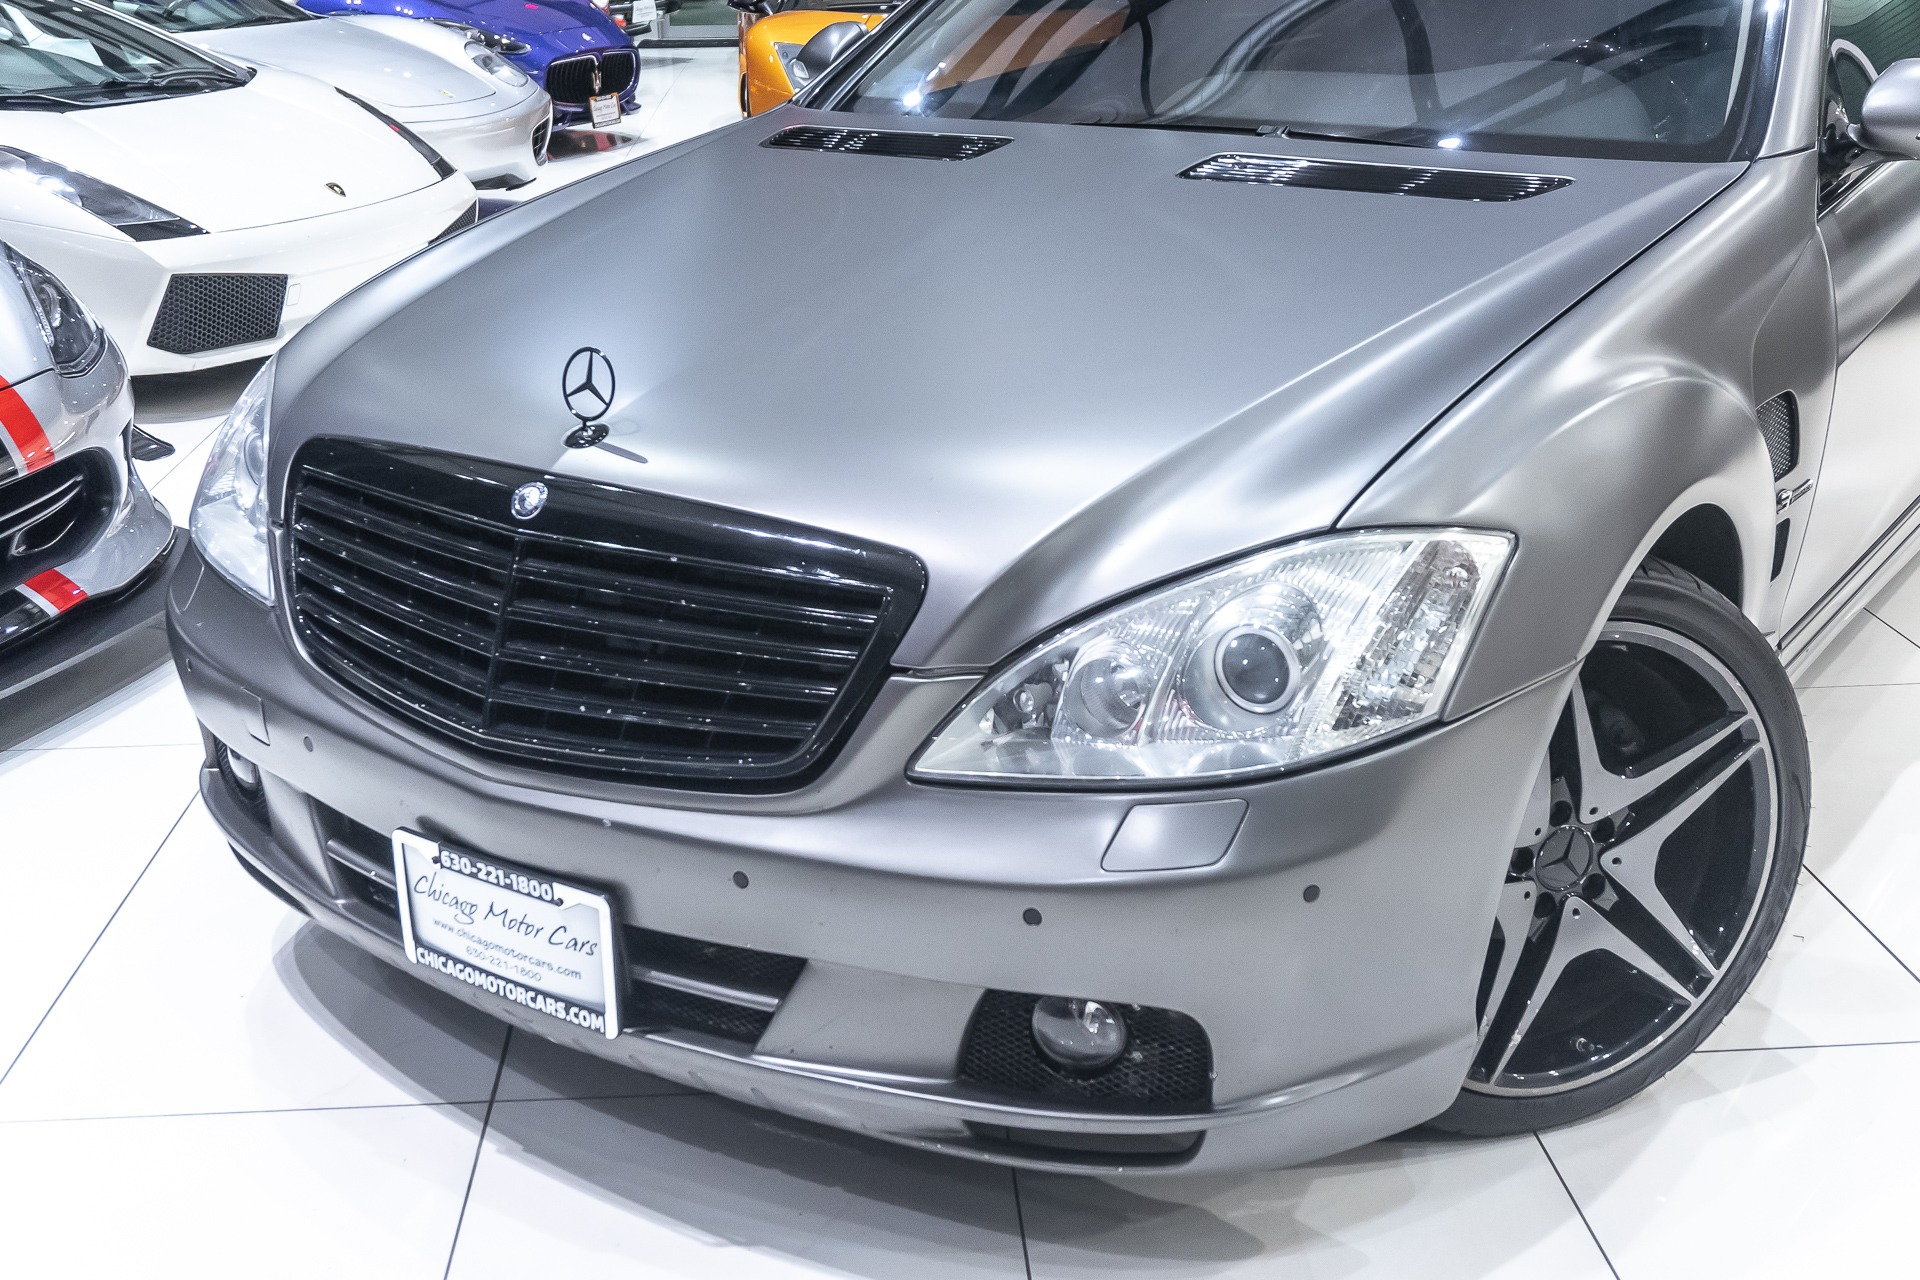 2007 S550 For Sale >> Used 2007 Mercedes Benz S550 Sedan Lorinser Package For